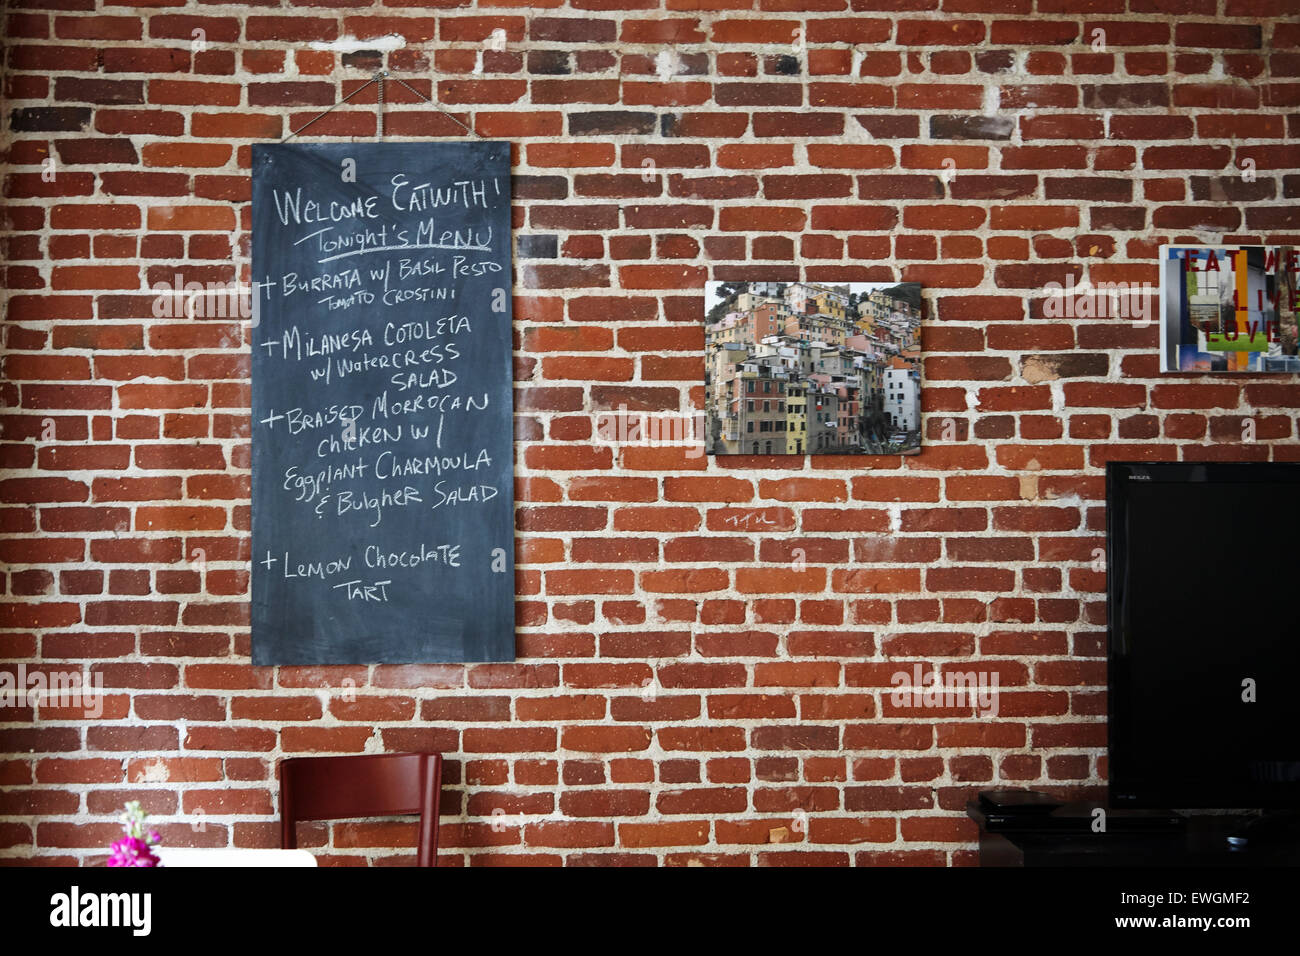 Mur de brique rouge avec menu chalk board Photo Stock